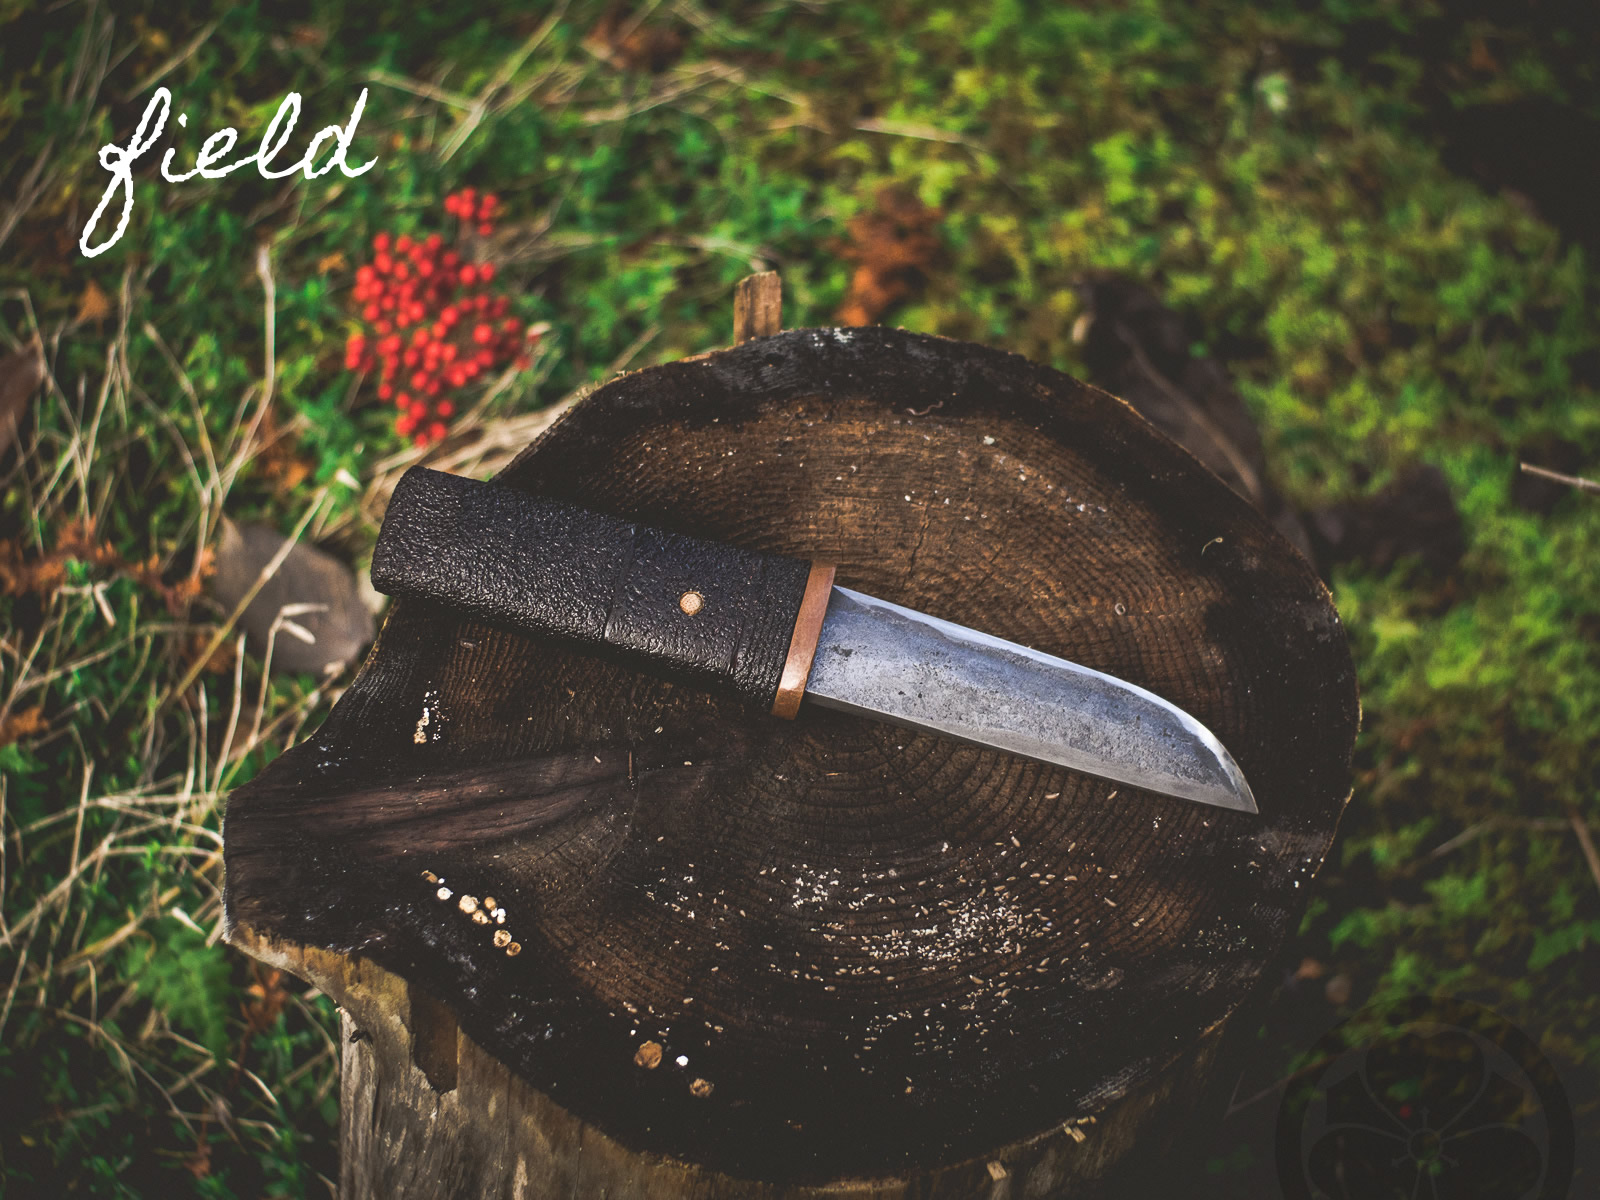 Island Blacksmith: Design your own charcoal forged knives made from reclaimed steel.